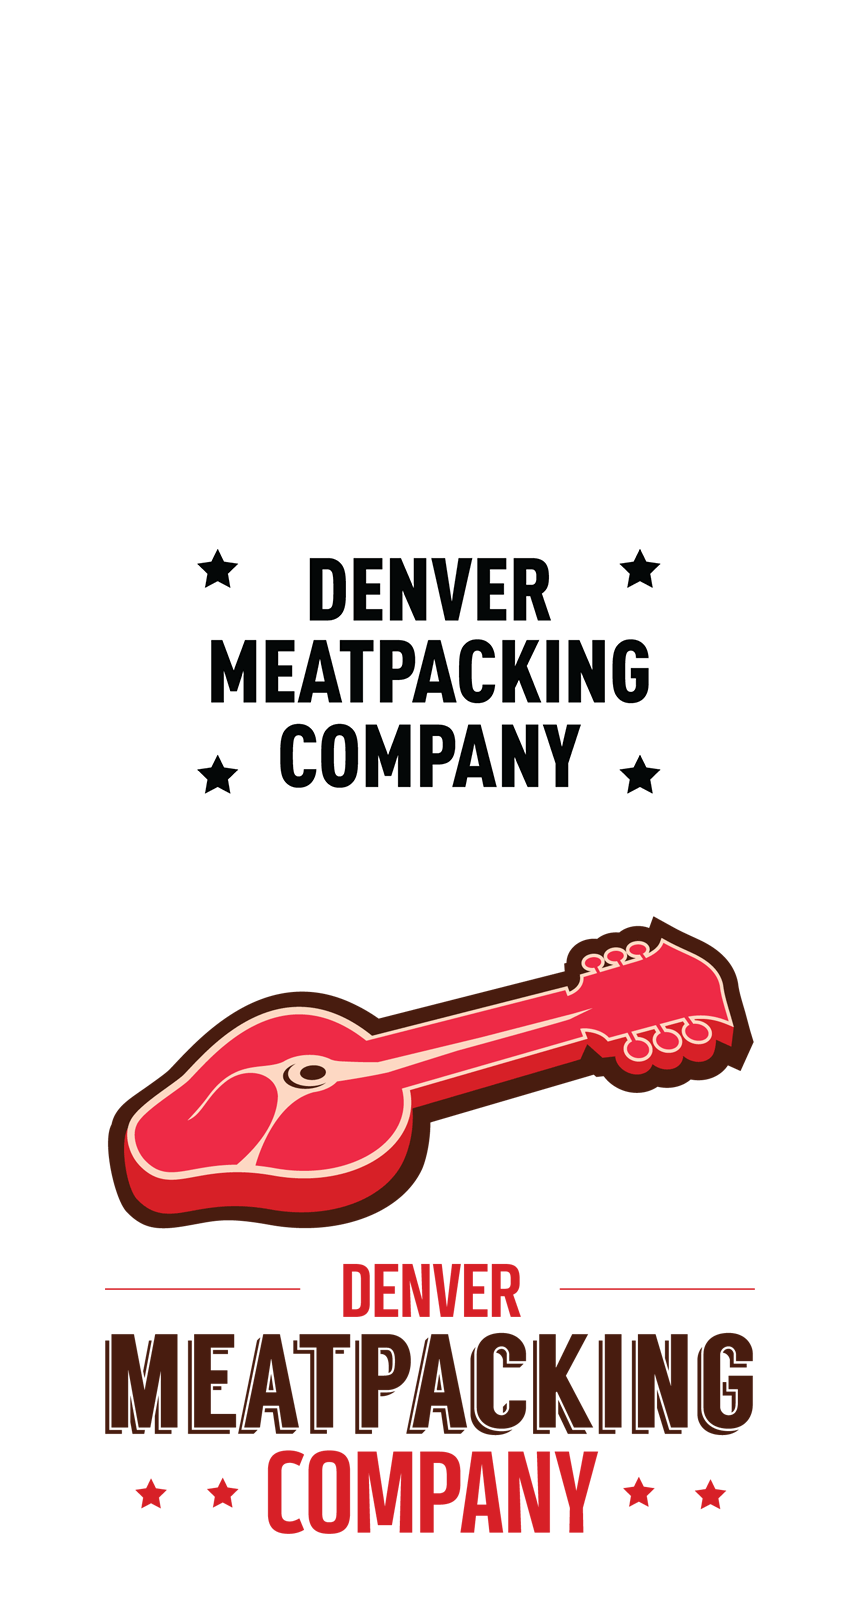 Denver Meatpacking Company Logo - Firestride Media